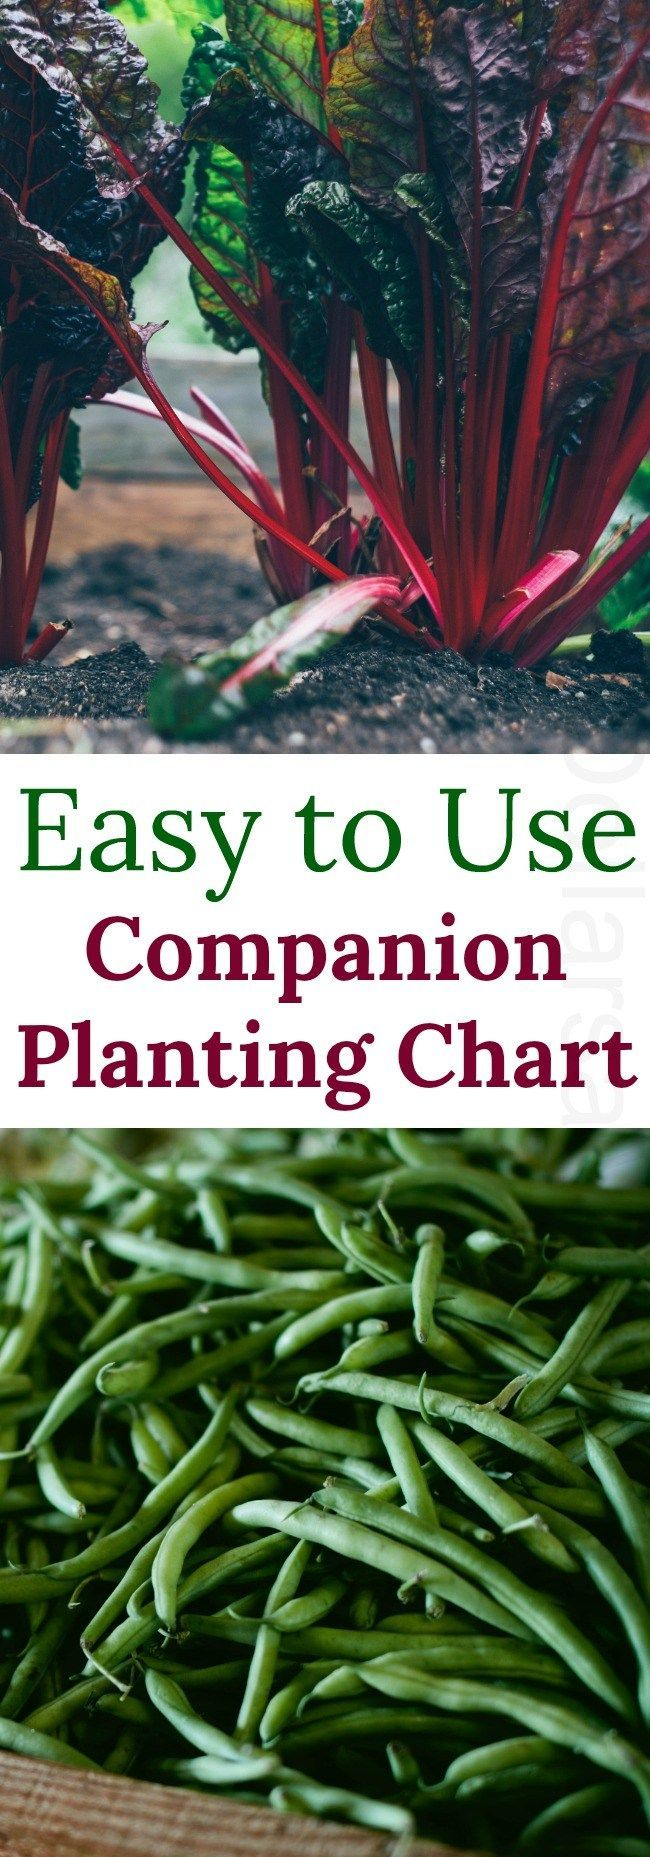 Companion Planting Chart {Carrots love Tomatoes u2013 One of my favorite garden…